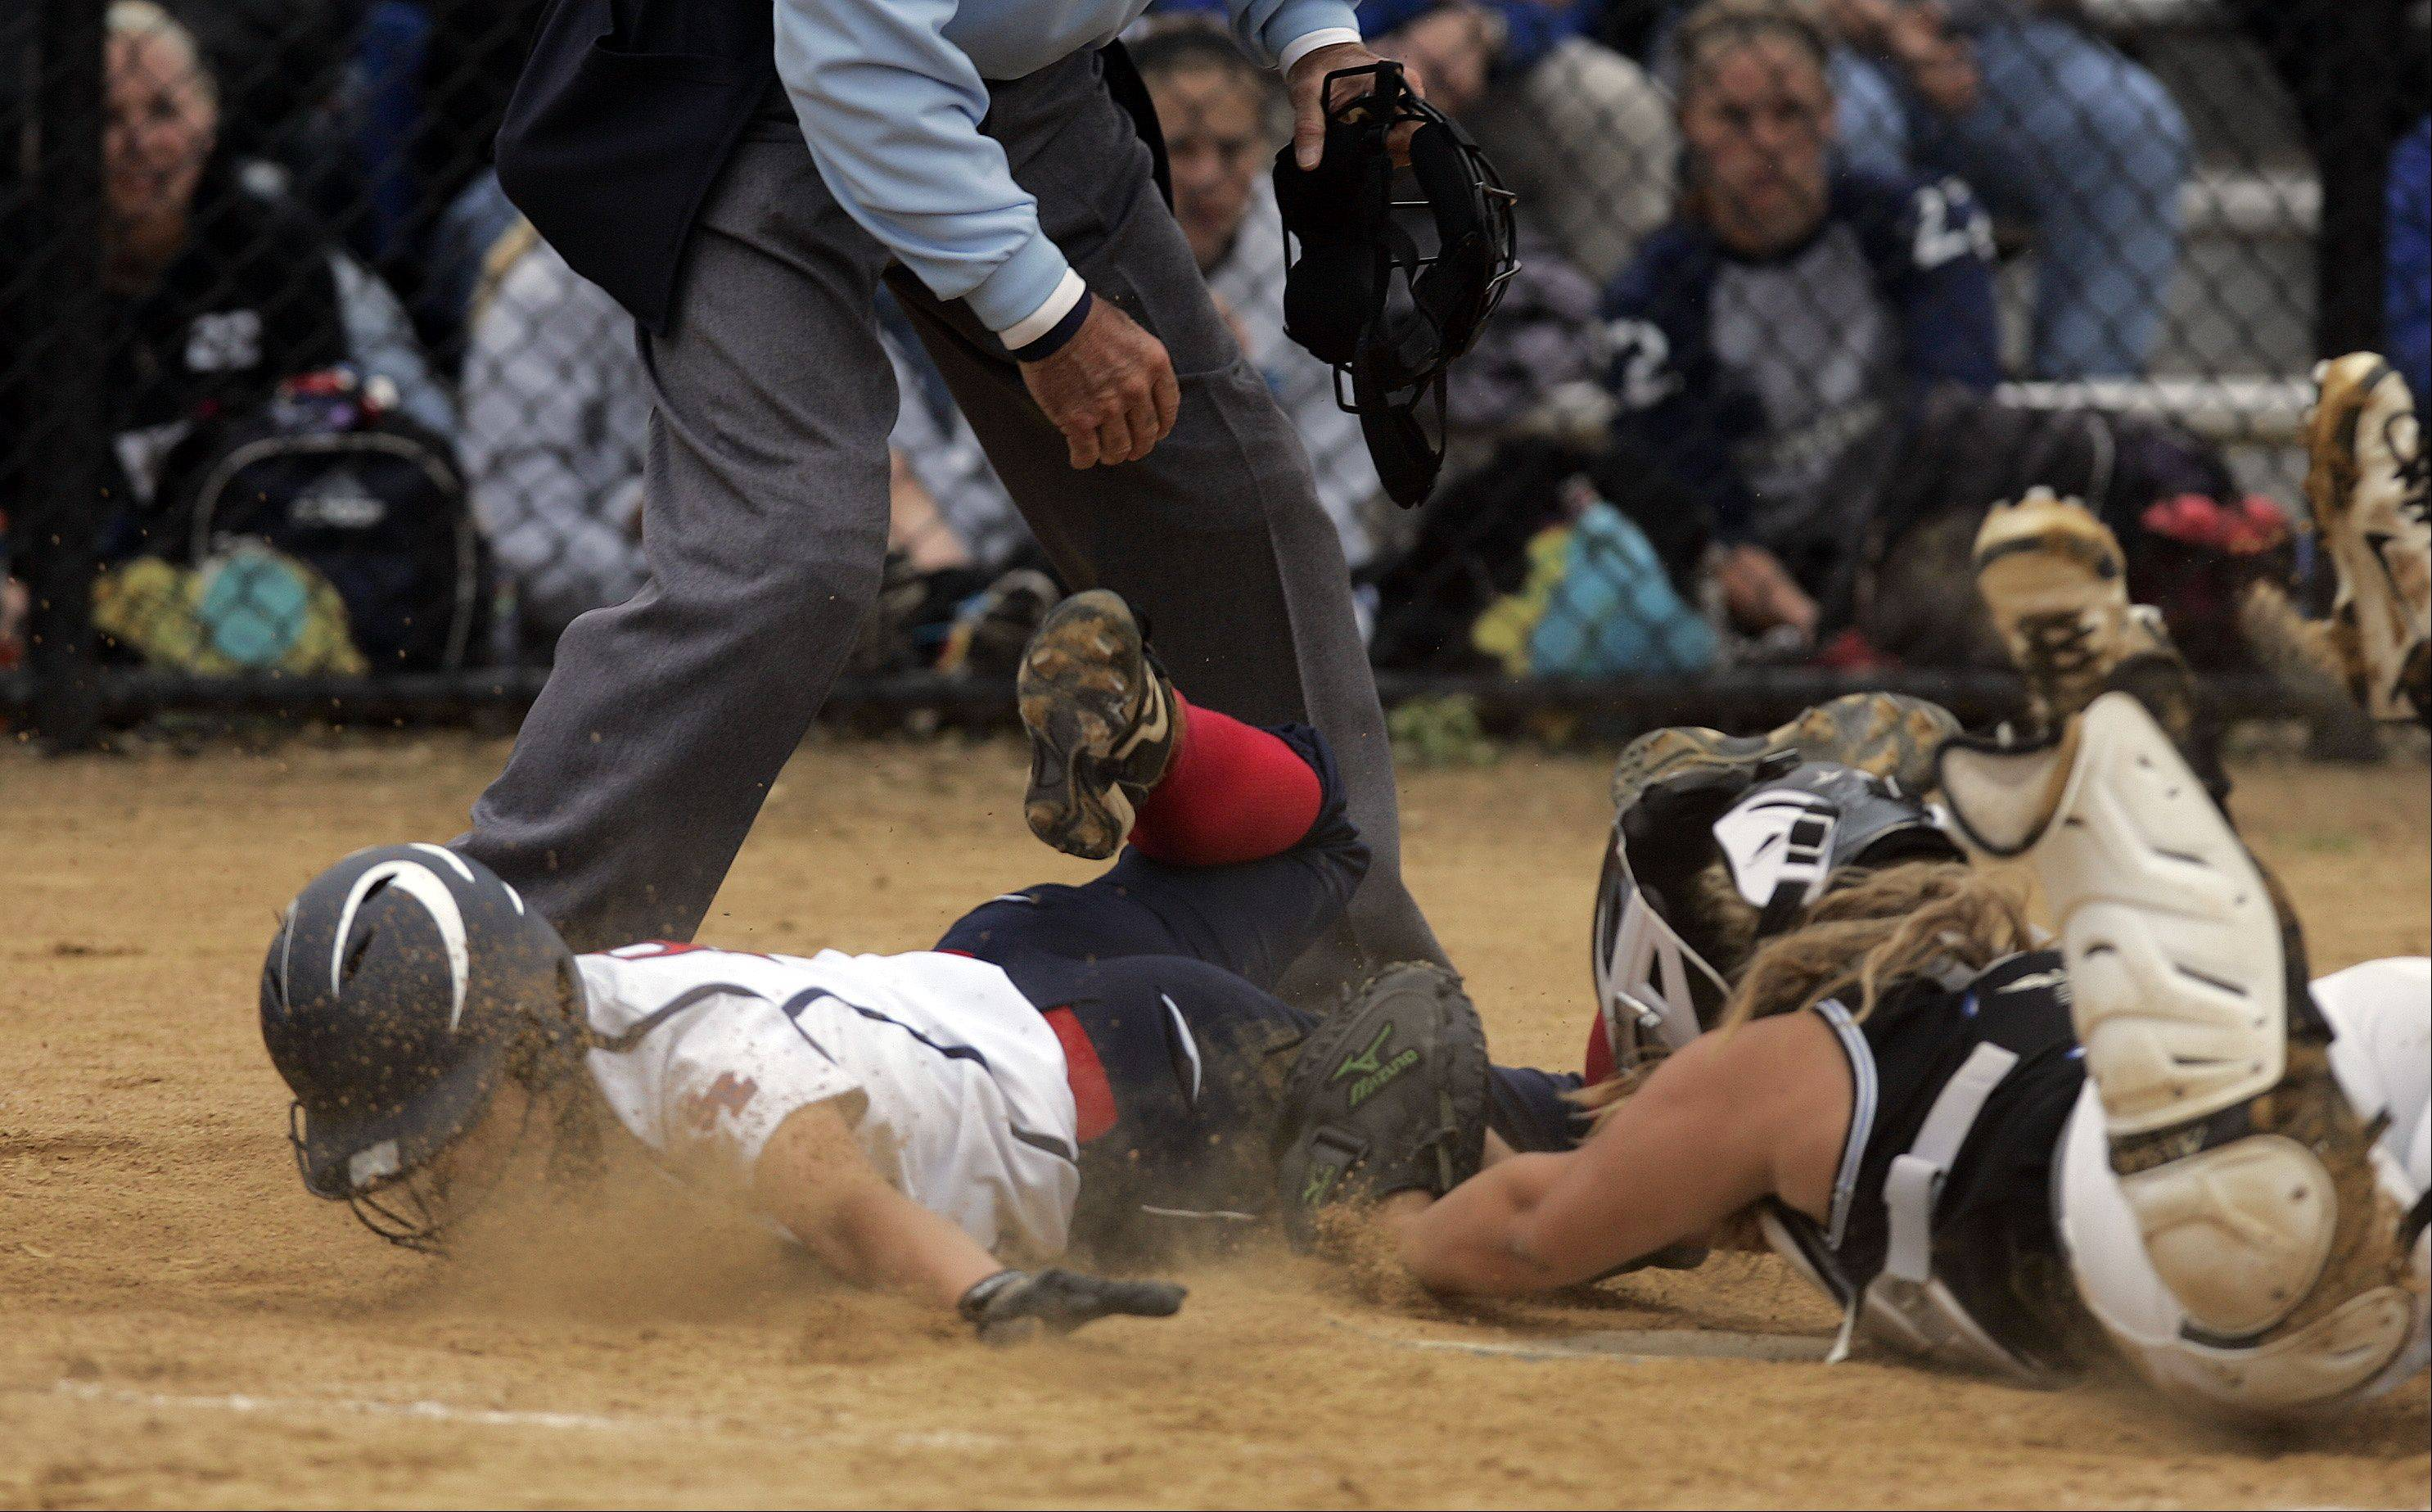 South Elgin's Victoria Watt slides safely under the tag of St. Charles North catcher Emily Brodner during the Class 4A regional softball final at St. Charles North Saturday.